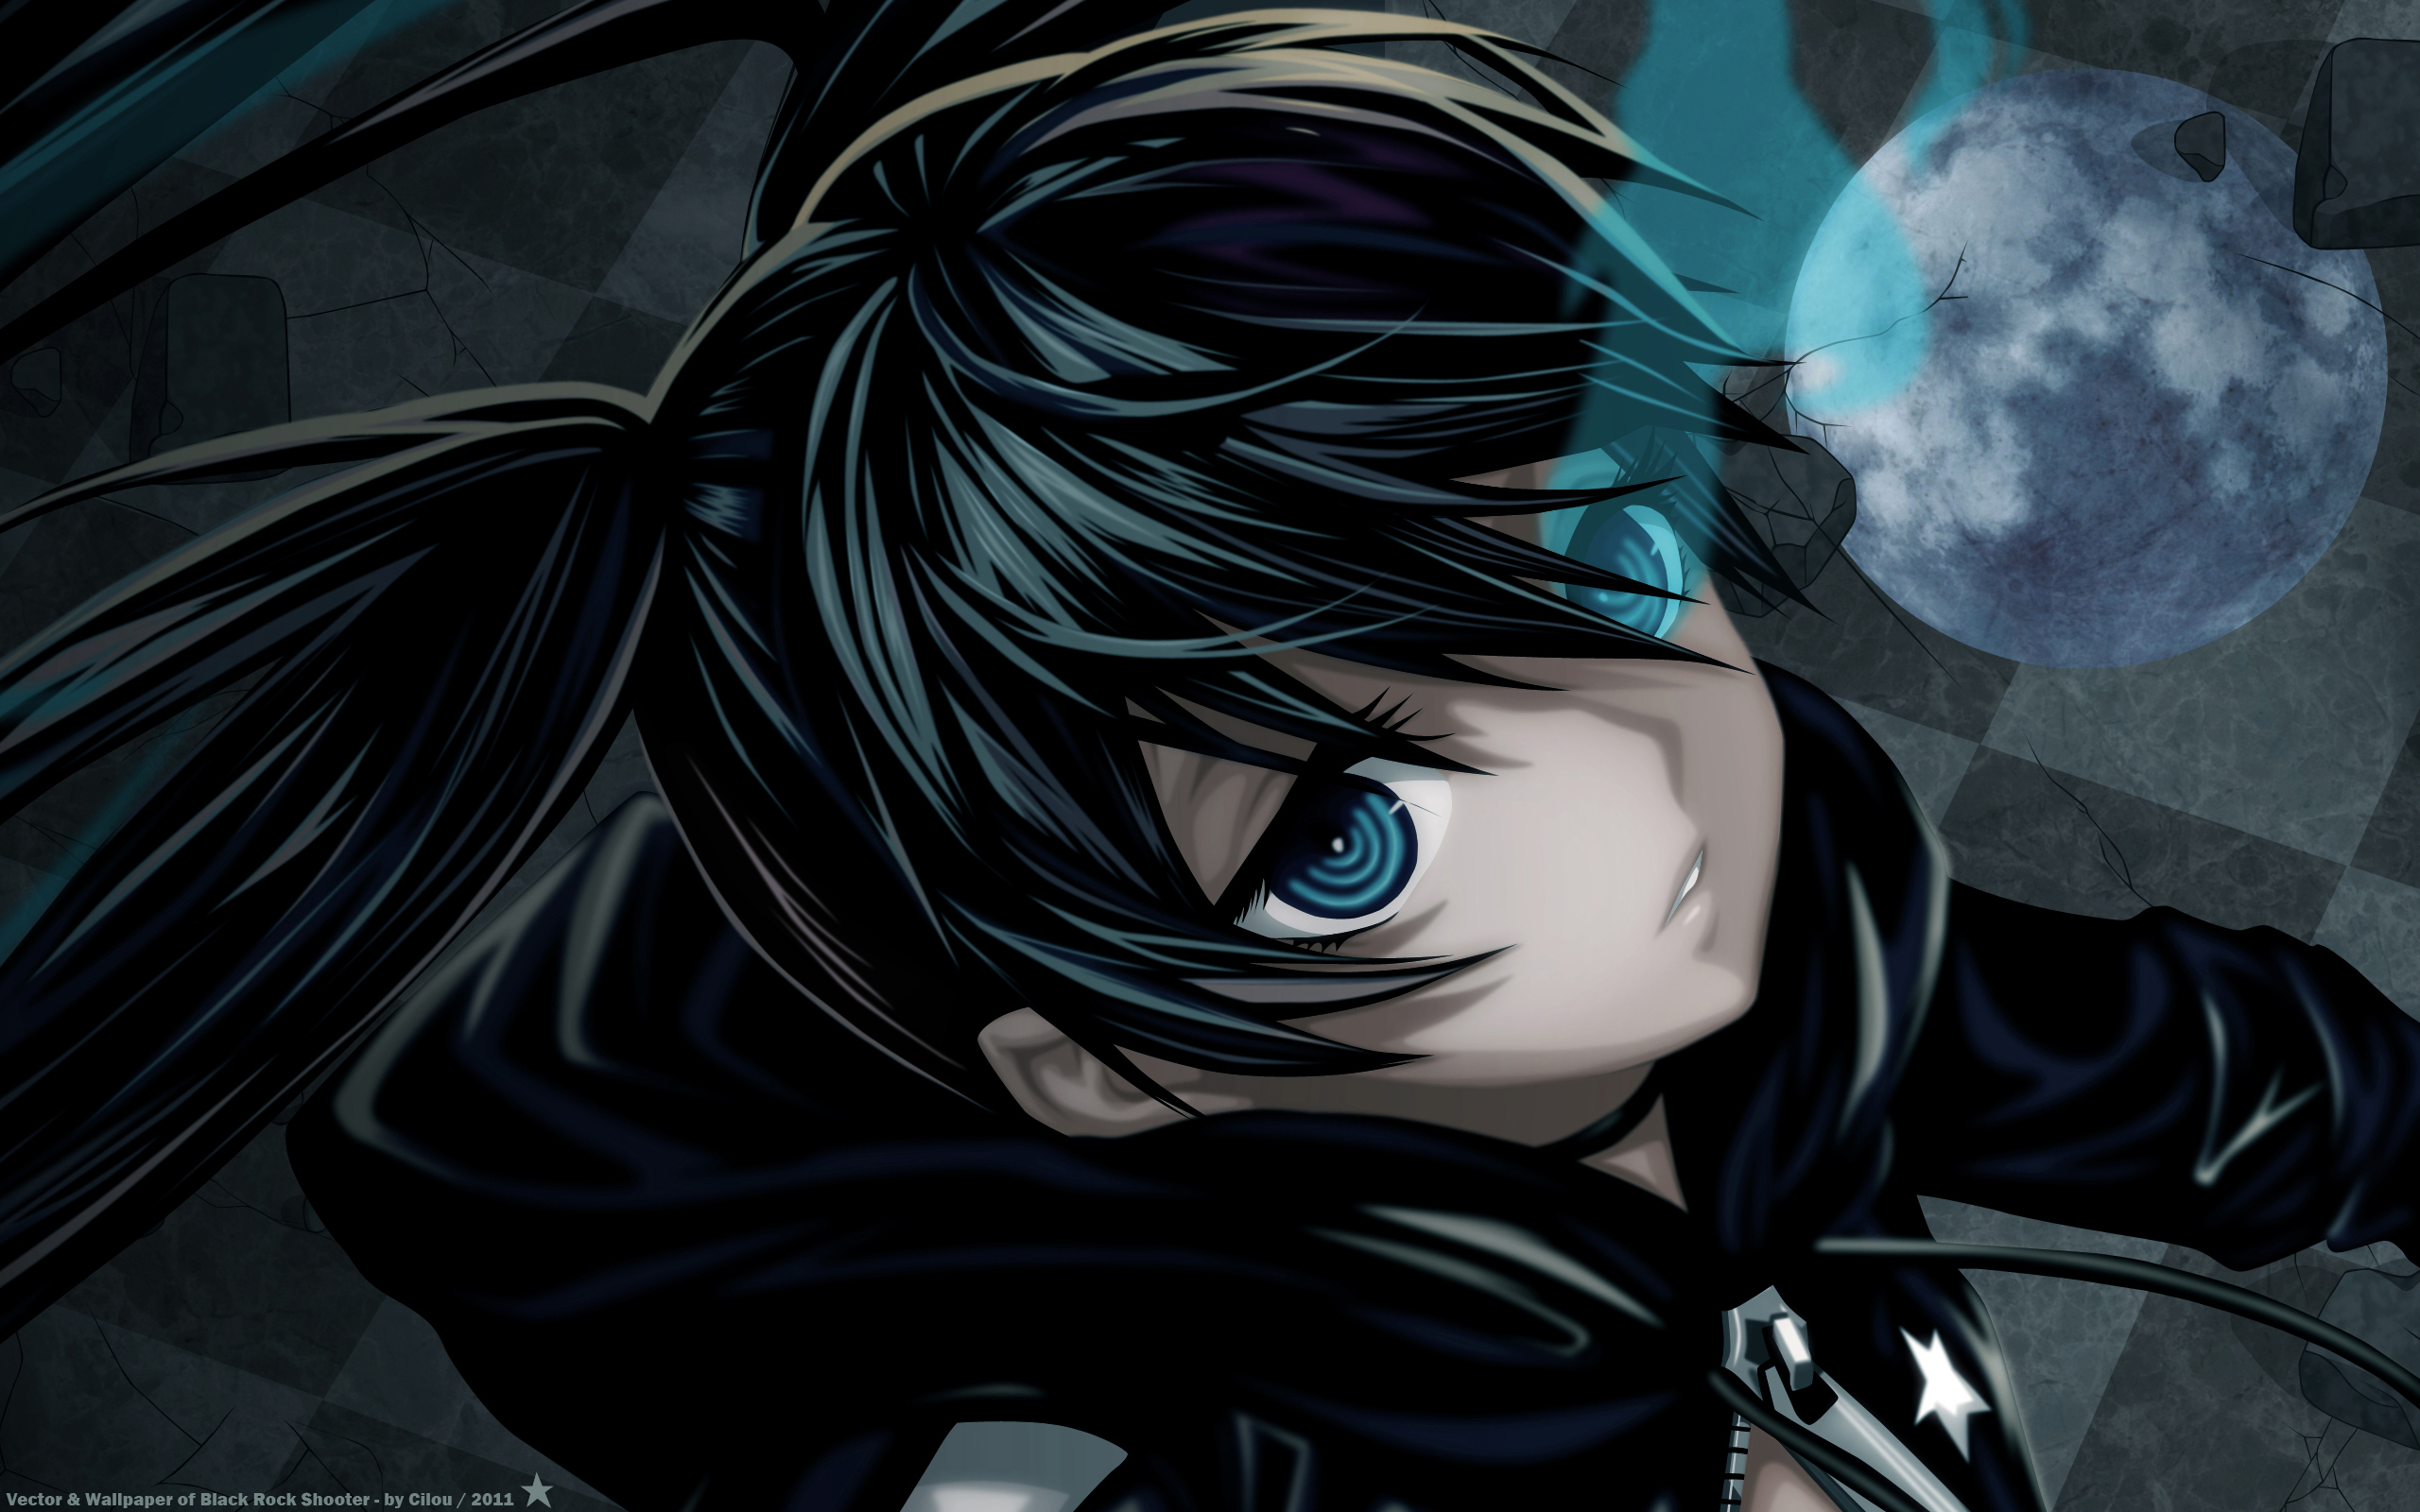 Black rock shooter wallpapers pack 16 04 12 - Blue anime wallpaper ...